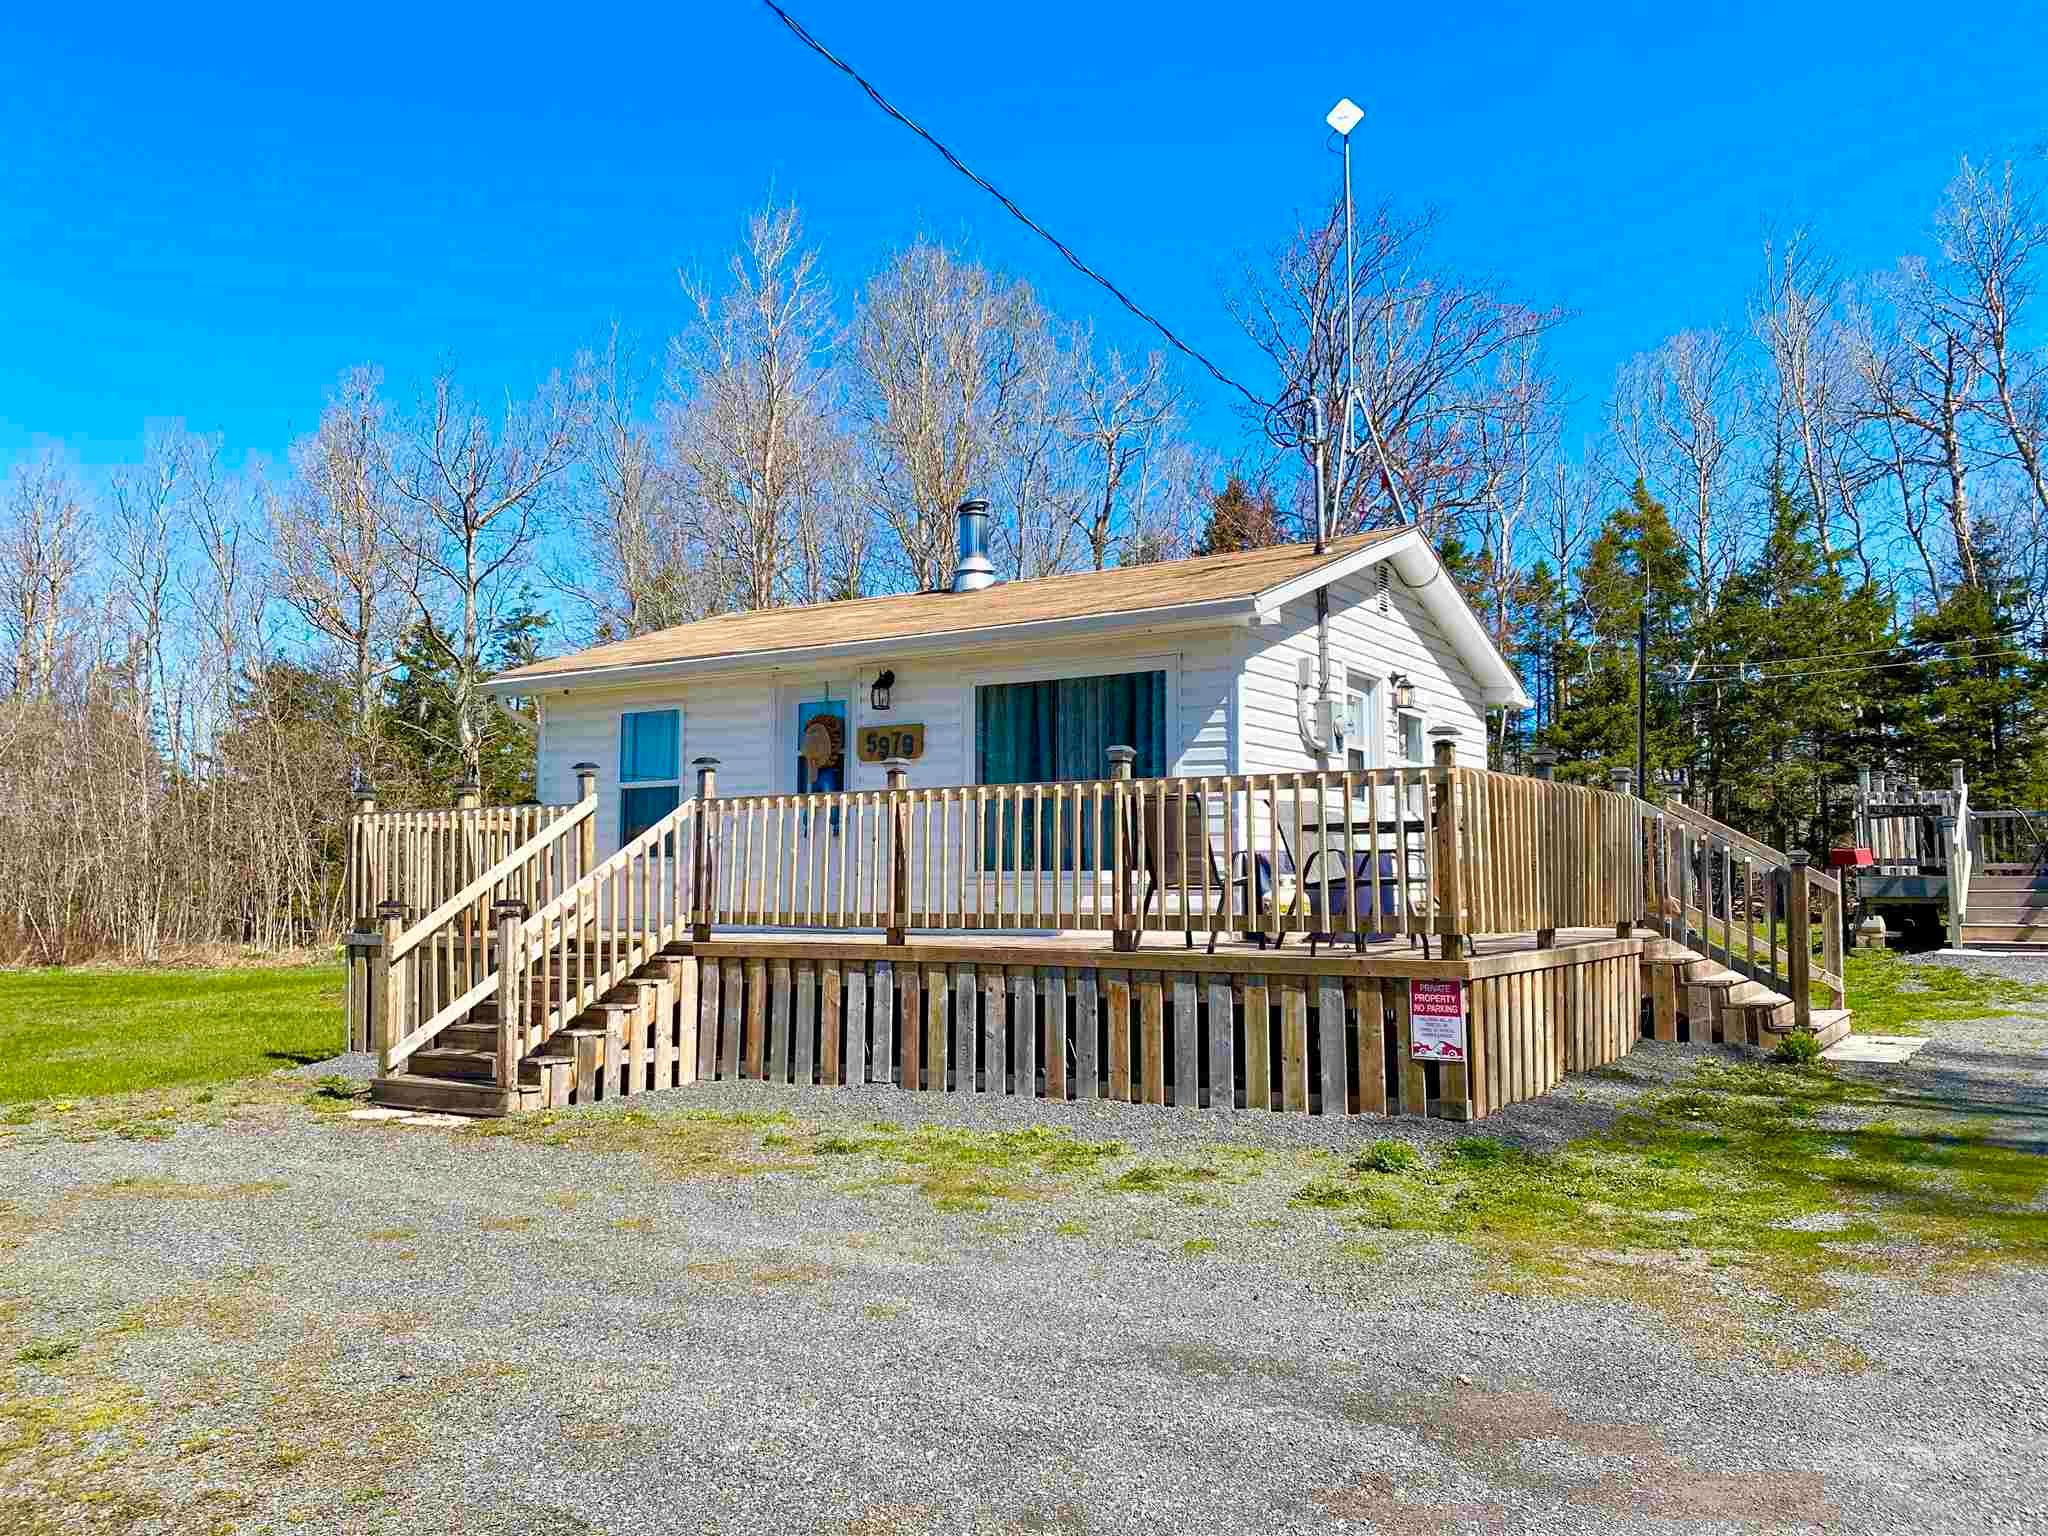 Main Photo: 5979 Highway 6 in Caribou River: 108-Rural Pictou County Residential for sale (Northern Region)  : MLS®# 202110670